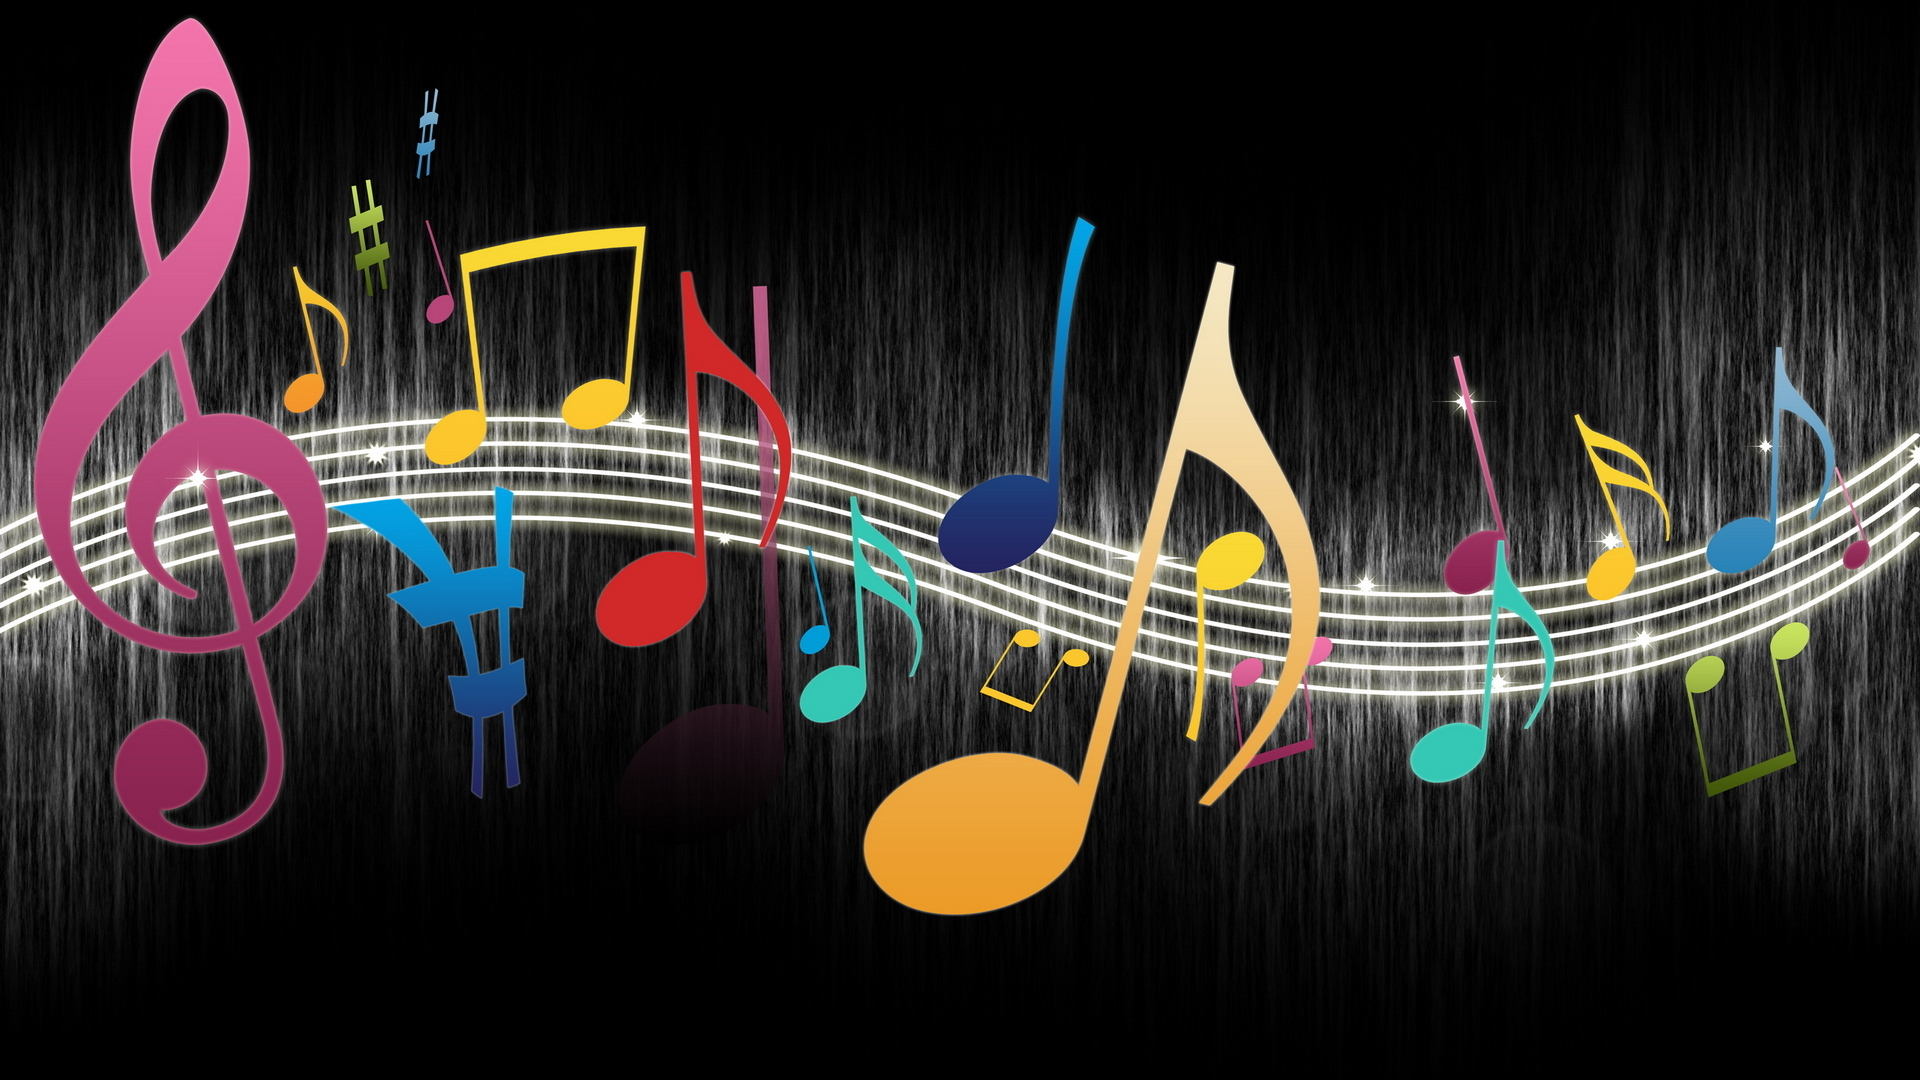 Music Wallpaper for PC Full HD Pictures 1920x1080